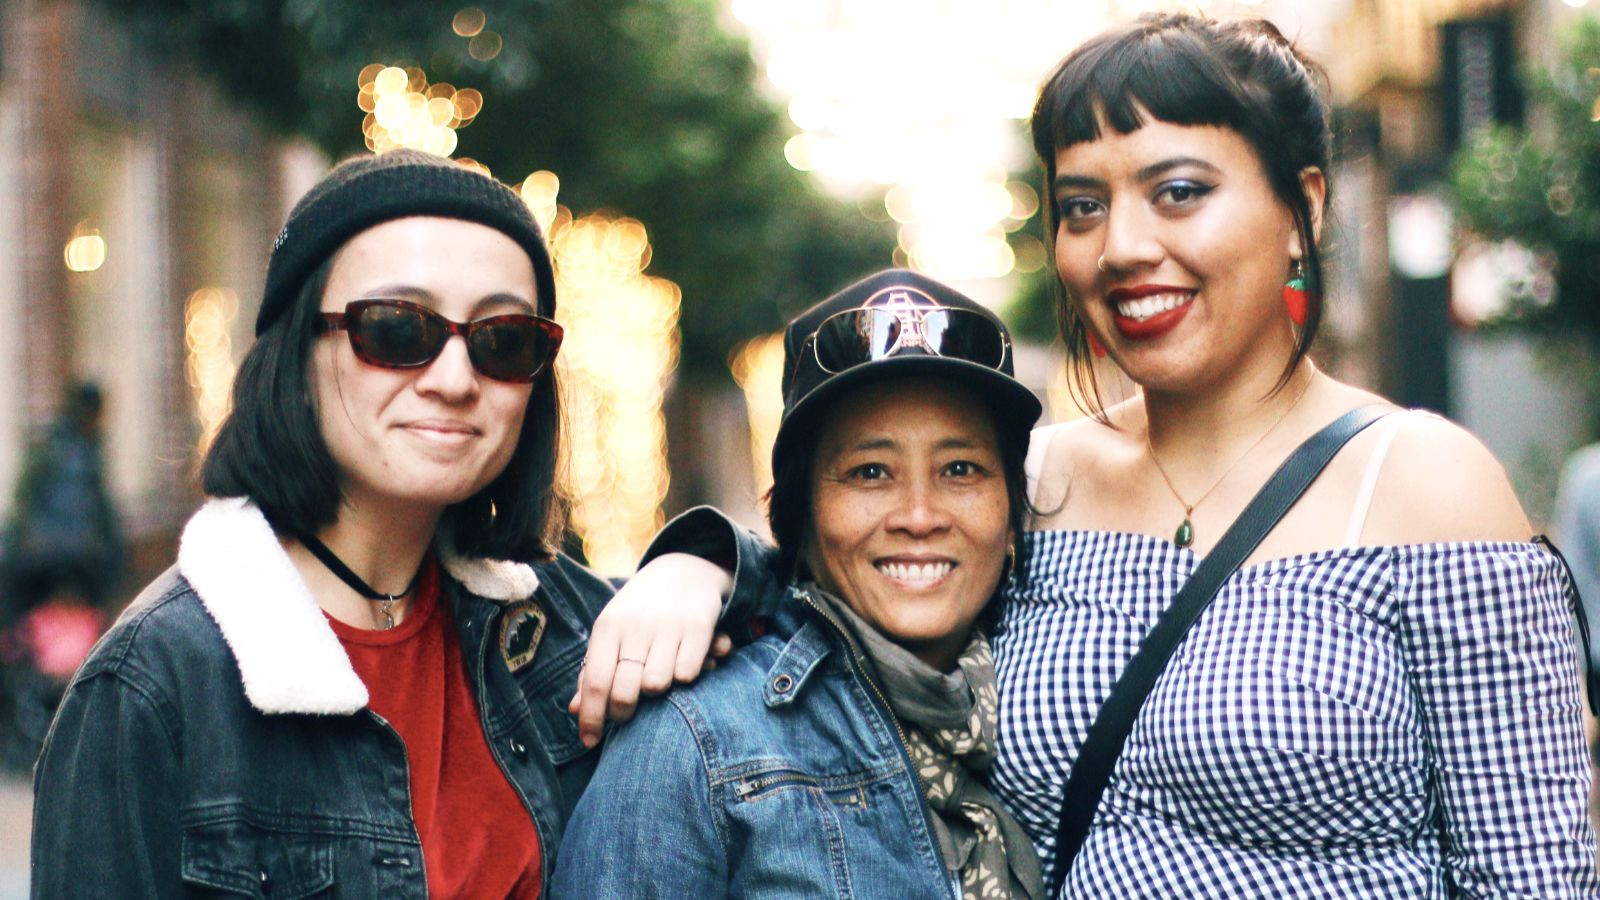 This Must Be The Place - Beets Special w/ Savsannah, Auntie Rose & Cheytown (November 2020)